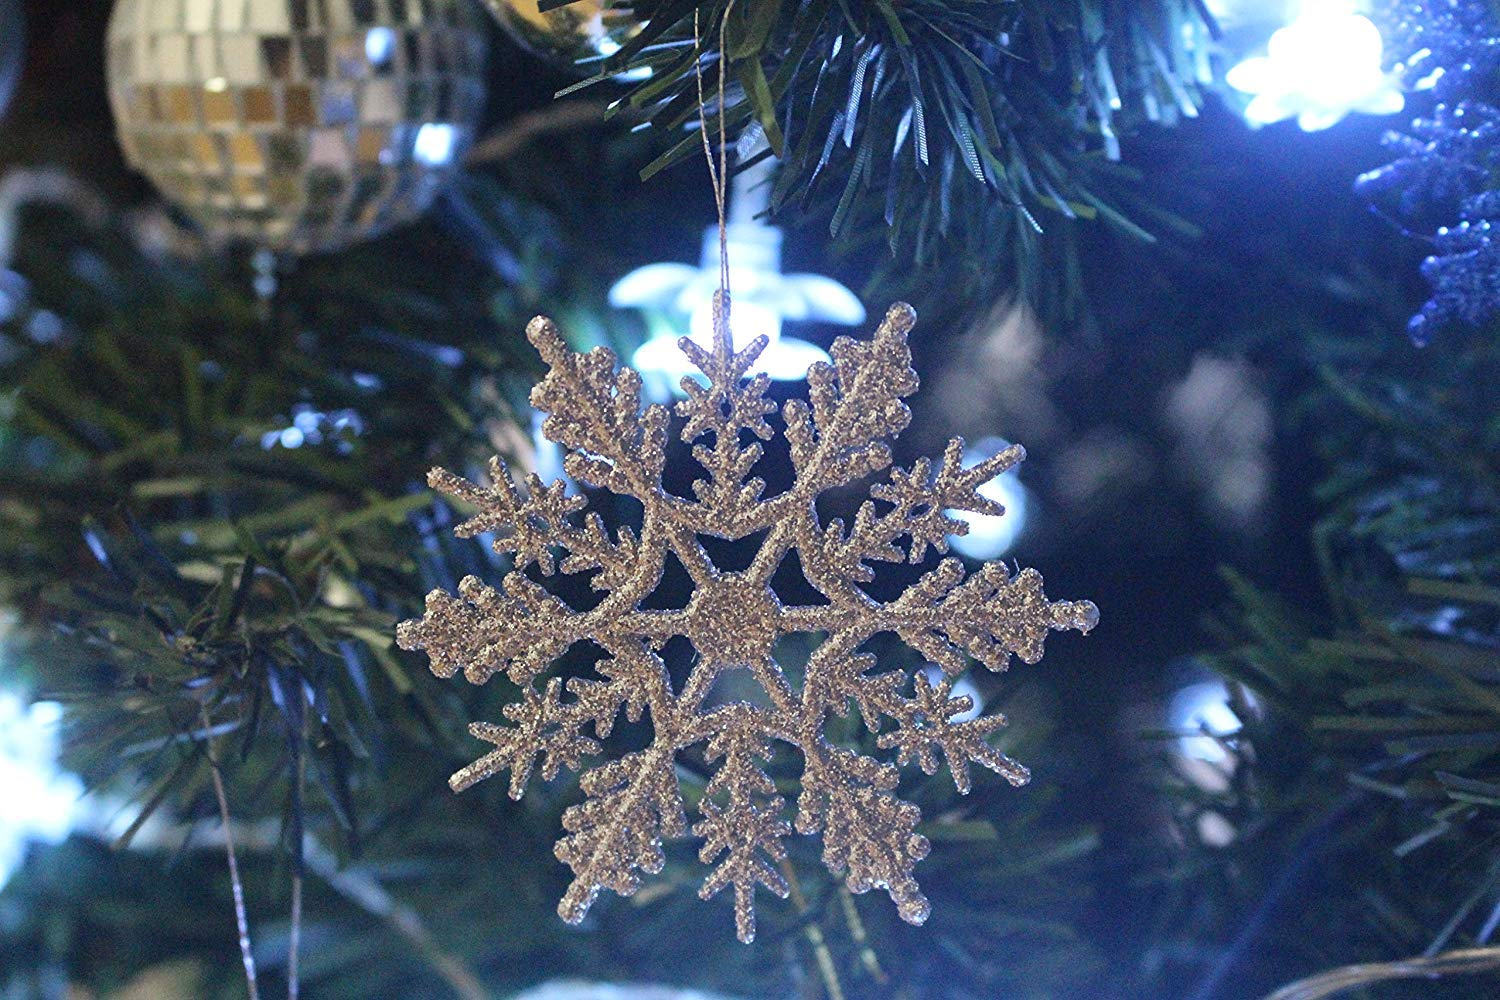 WISH HALLY WOOD 36pcs White 4inch Snow Fantasies Snowflake,Plastic Snowflake Ornament on String Hanger for Decorating Crafting White, 4inch Embellishing and Wedding